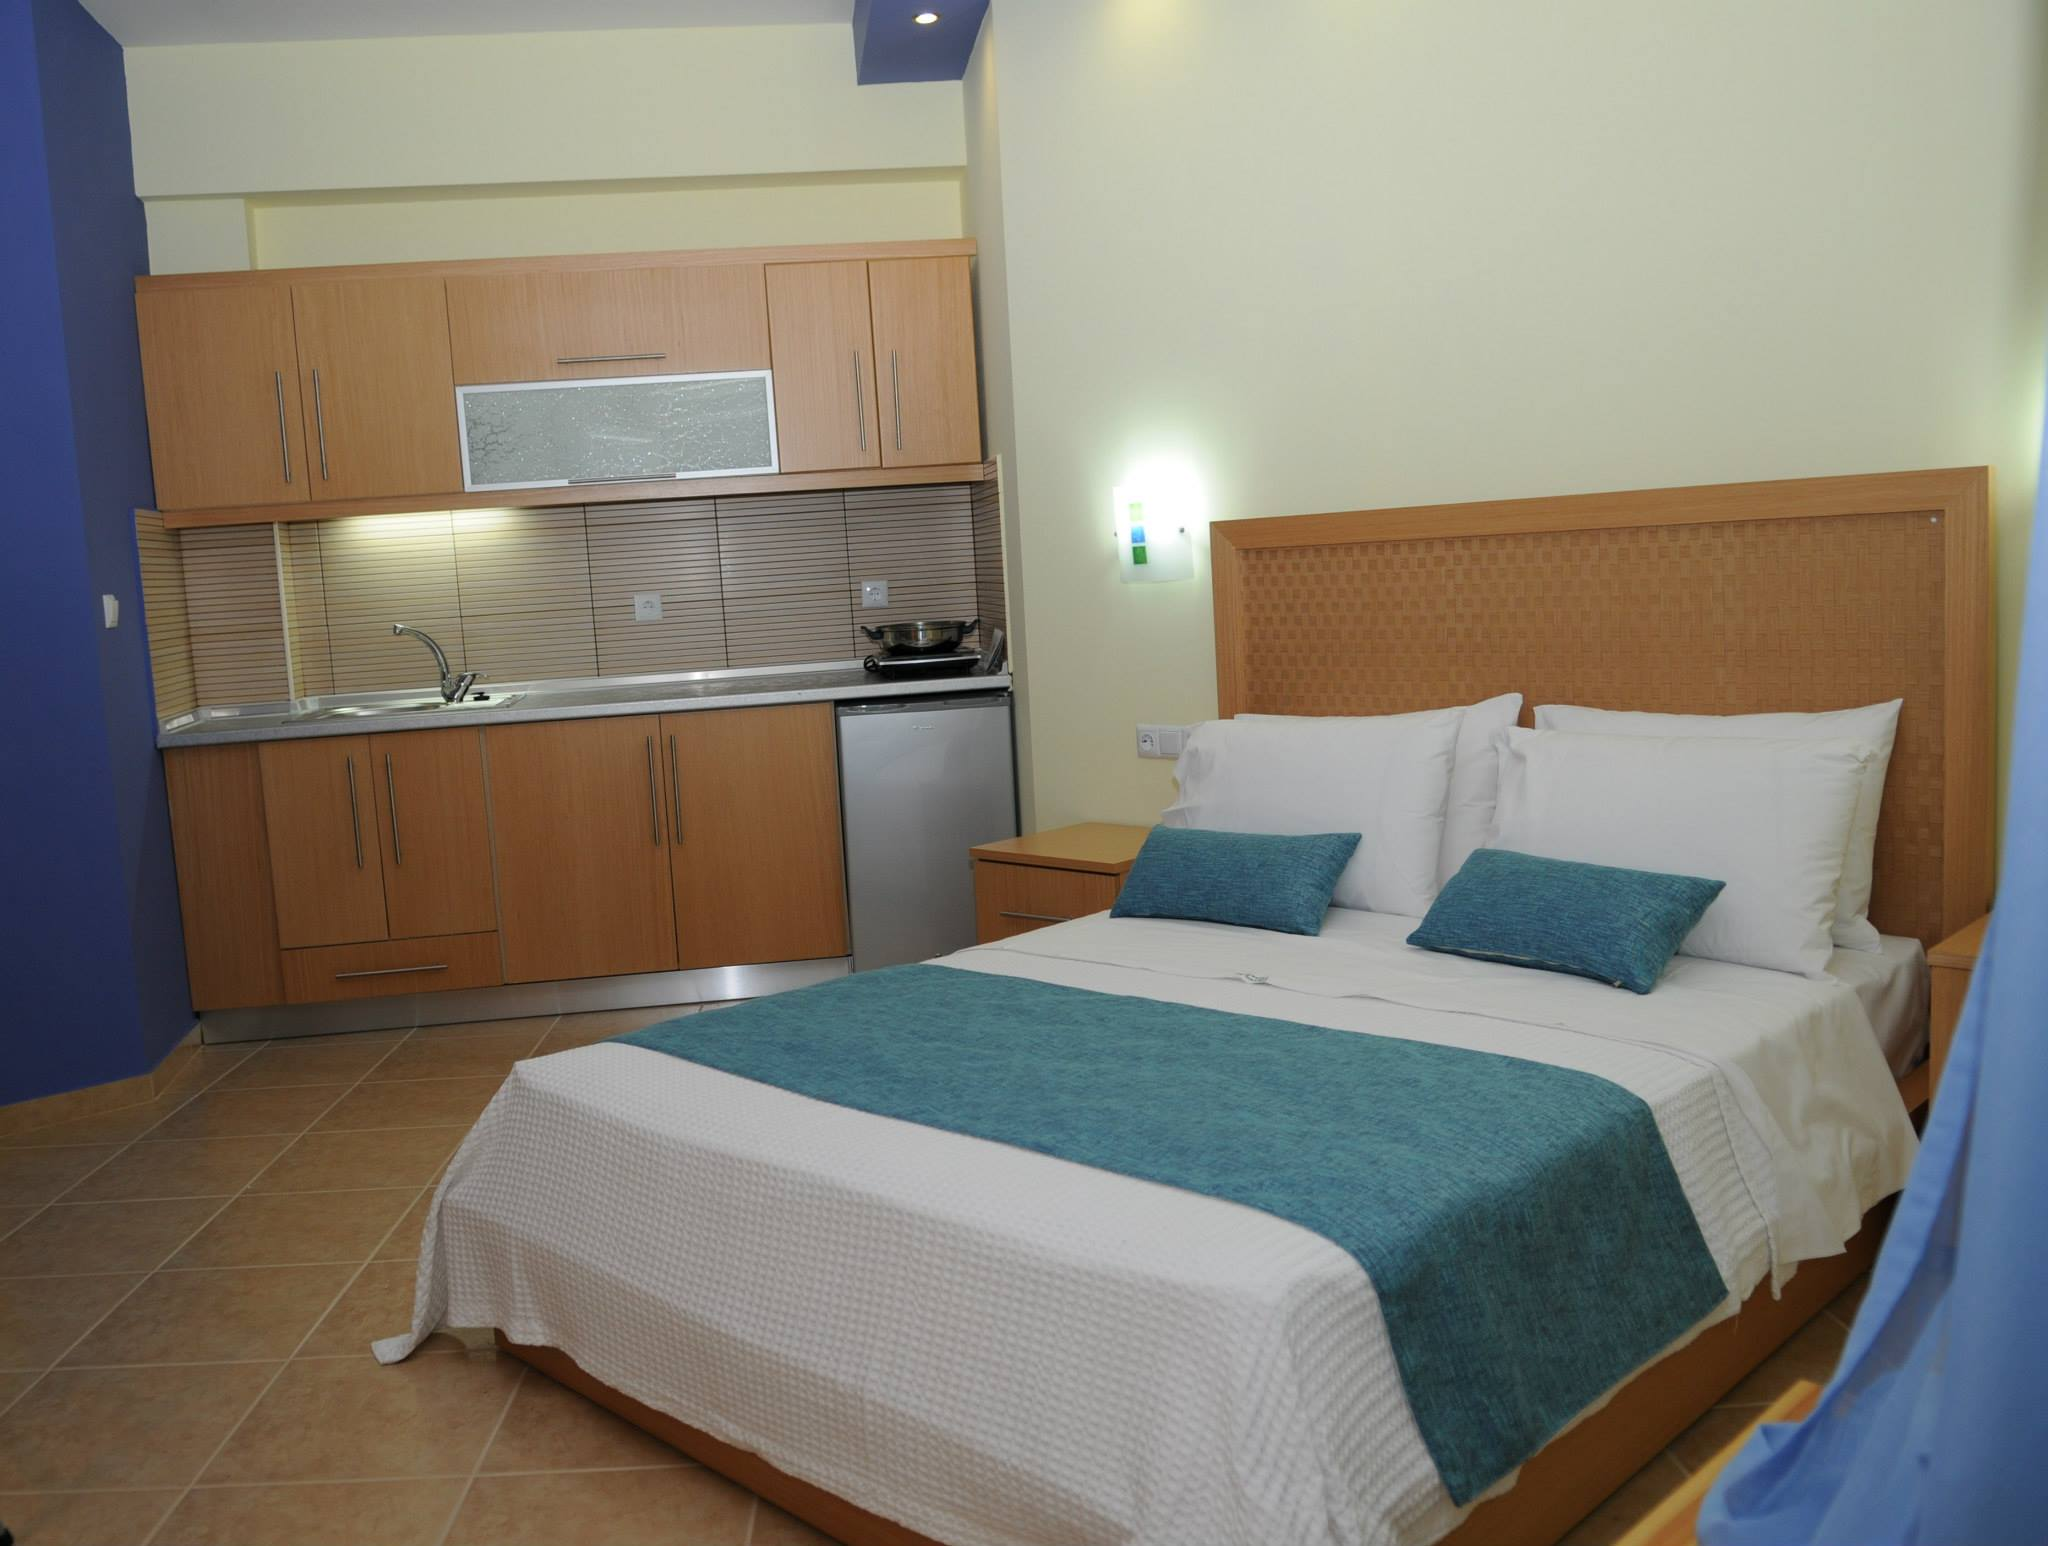 greenotel studios apartments sarti sithonia studio no. 9 and 10 (2)